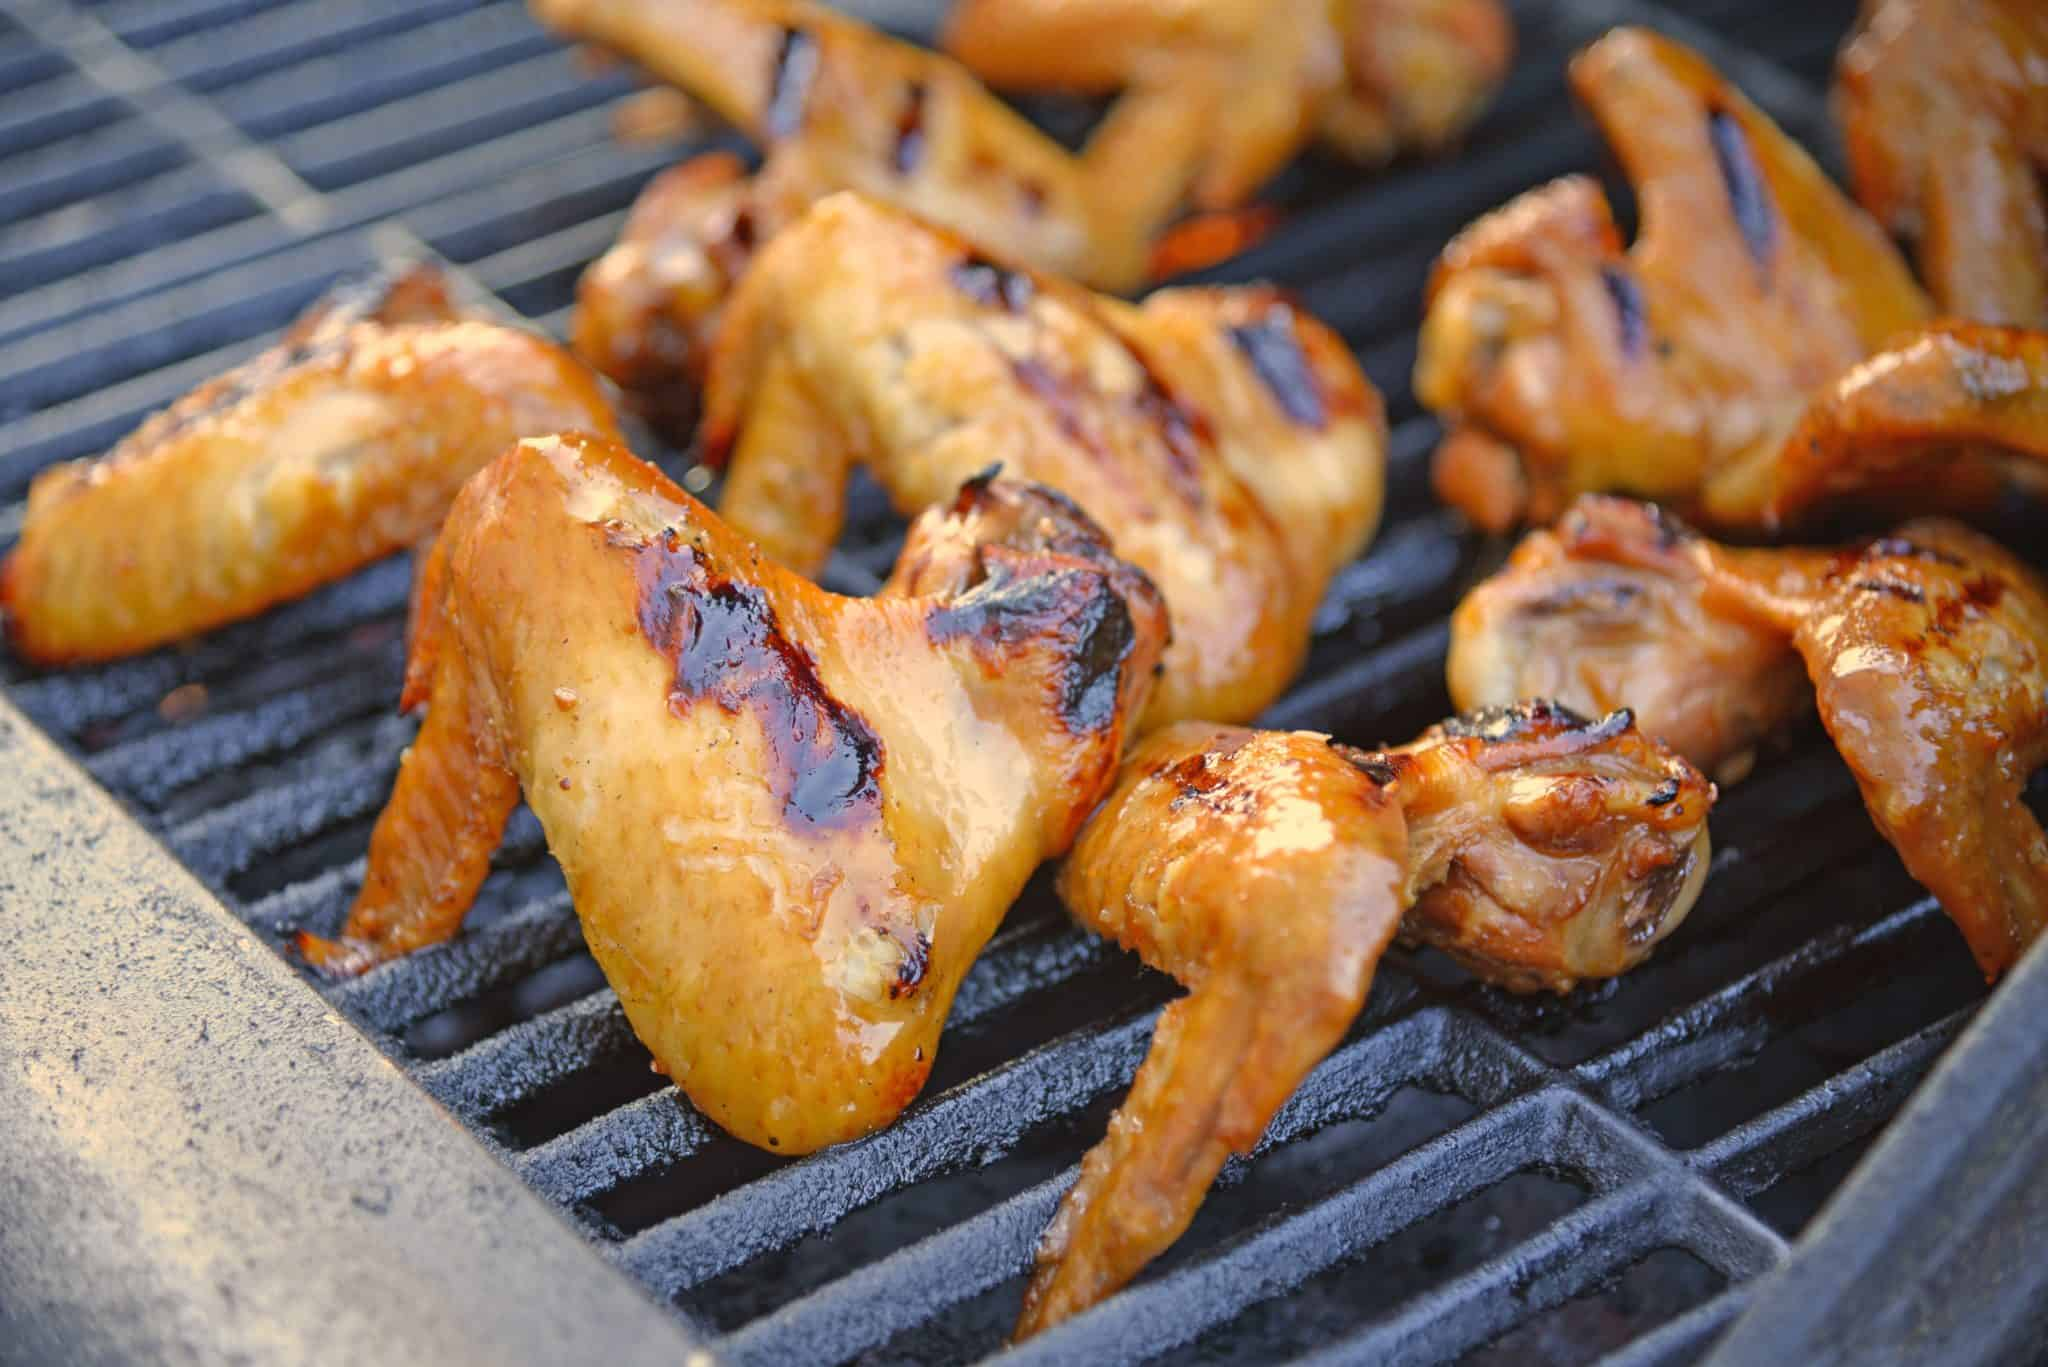 Lemon Garlic Yakitori Wings are marinated in a zesty lemon garlic marinade and grilled to perfection. Serve your grilled wings with classic BBQ side dishes.